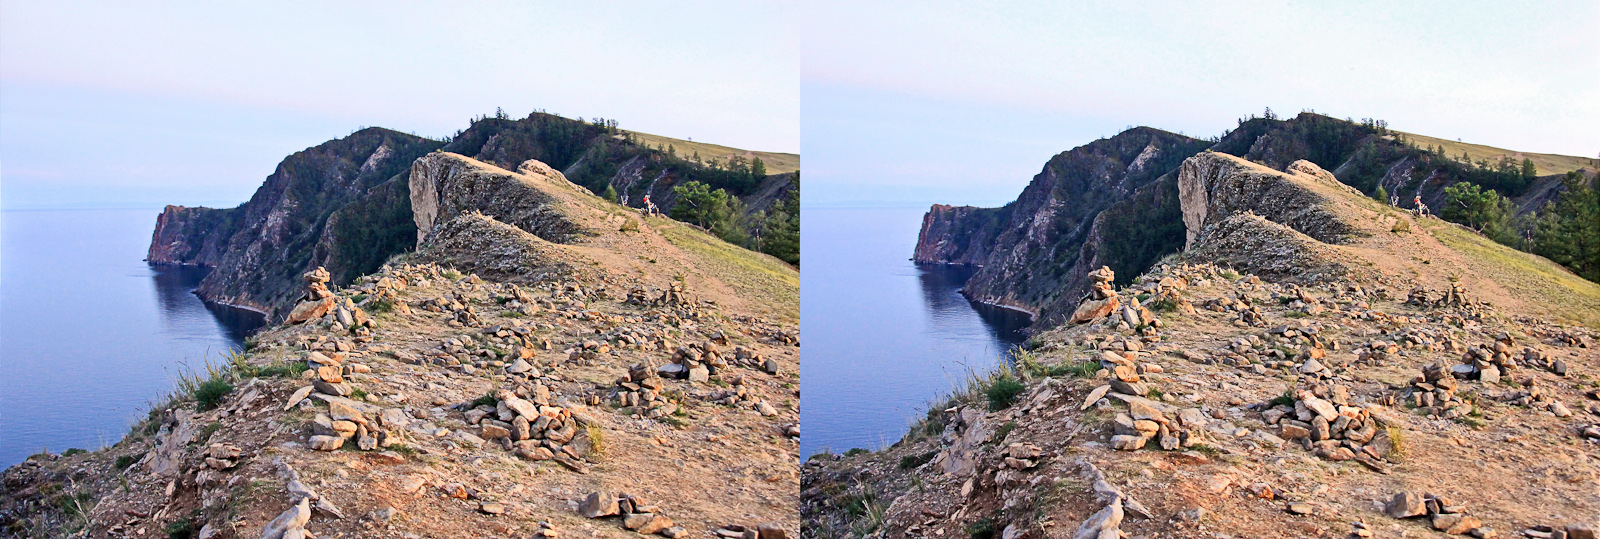 Khoboy Cape - the northernmost point of Olkhon